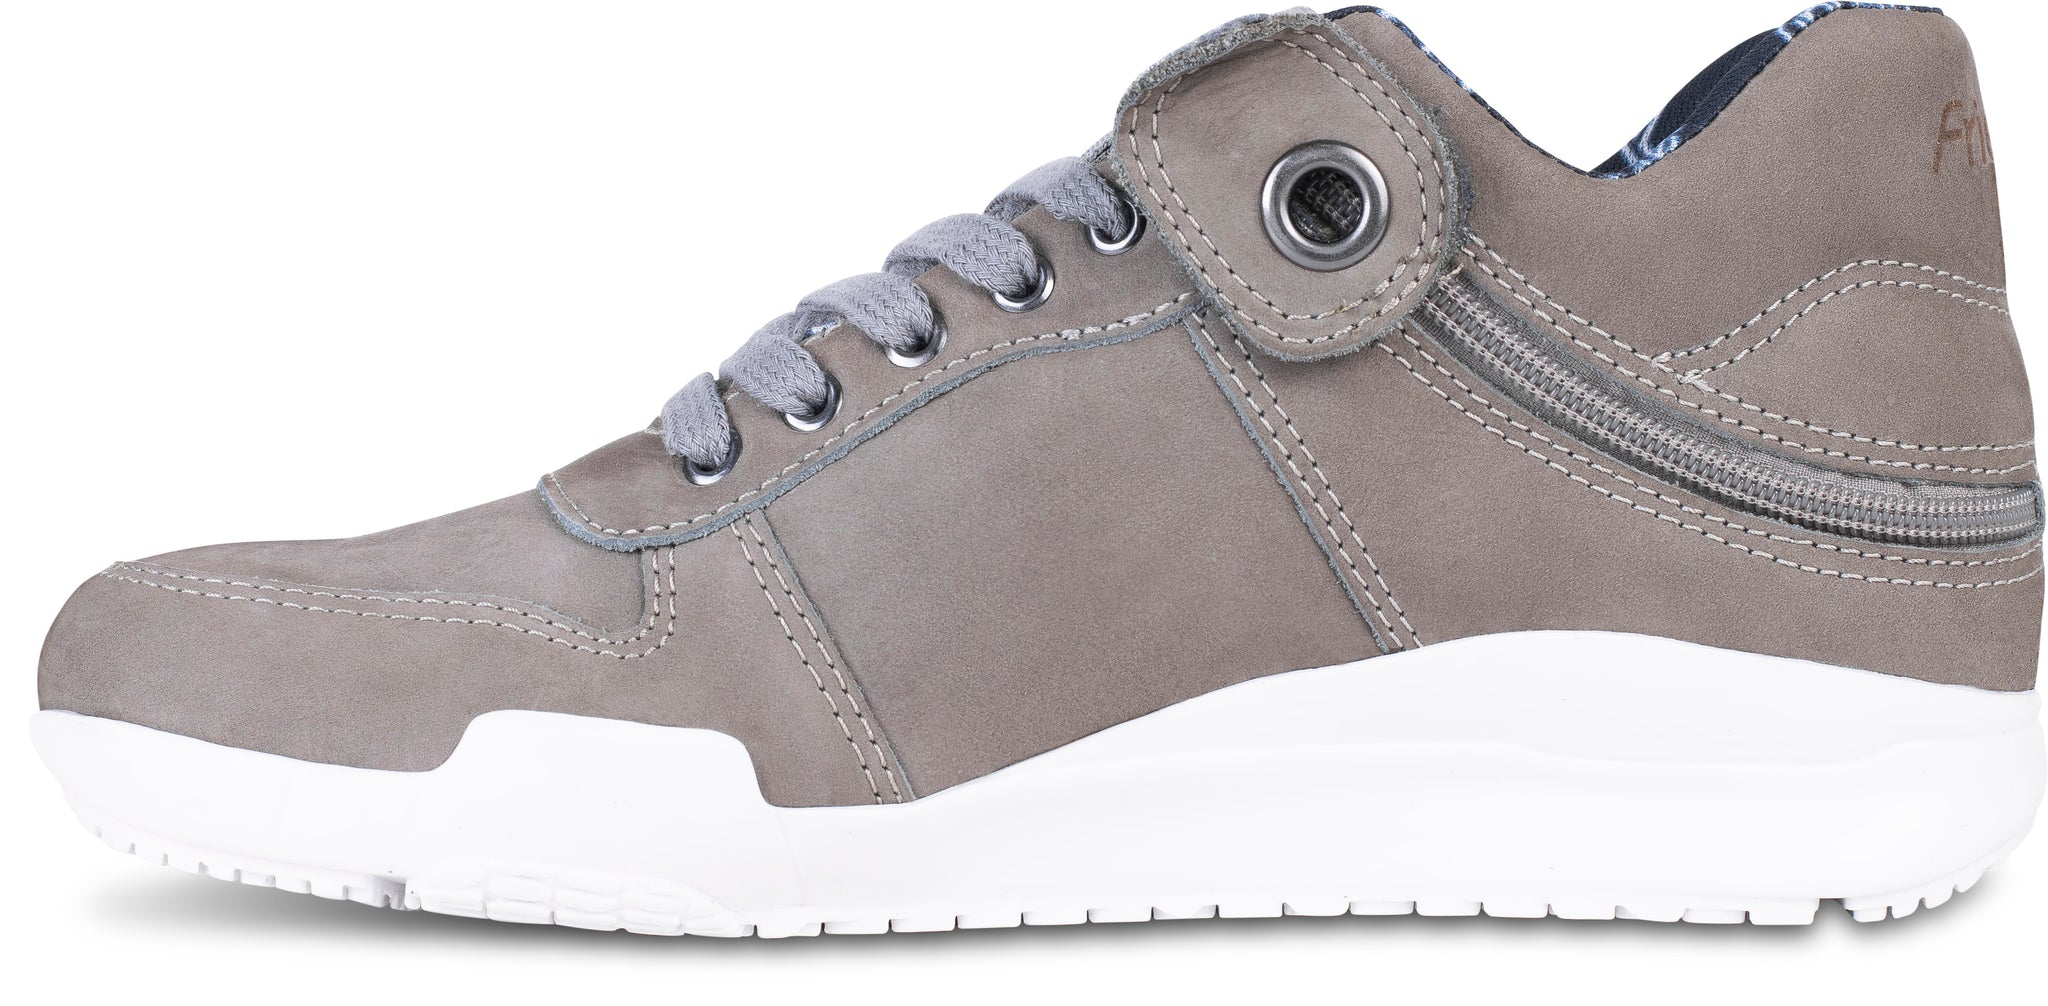 Men's Medimoto Grey Suede